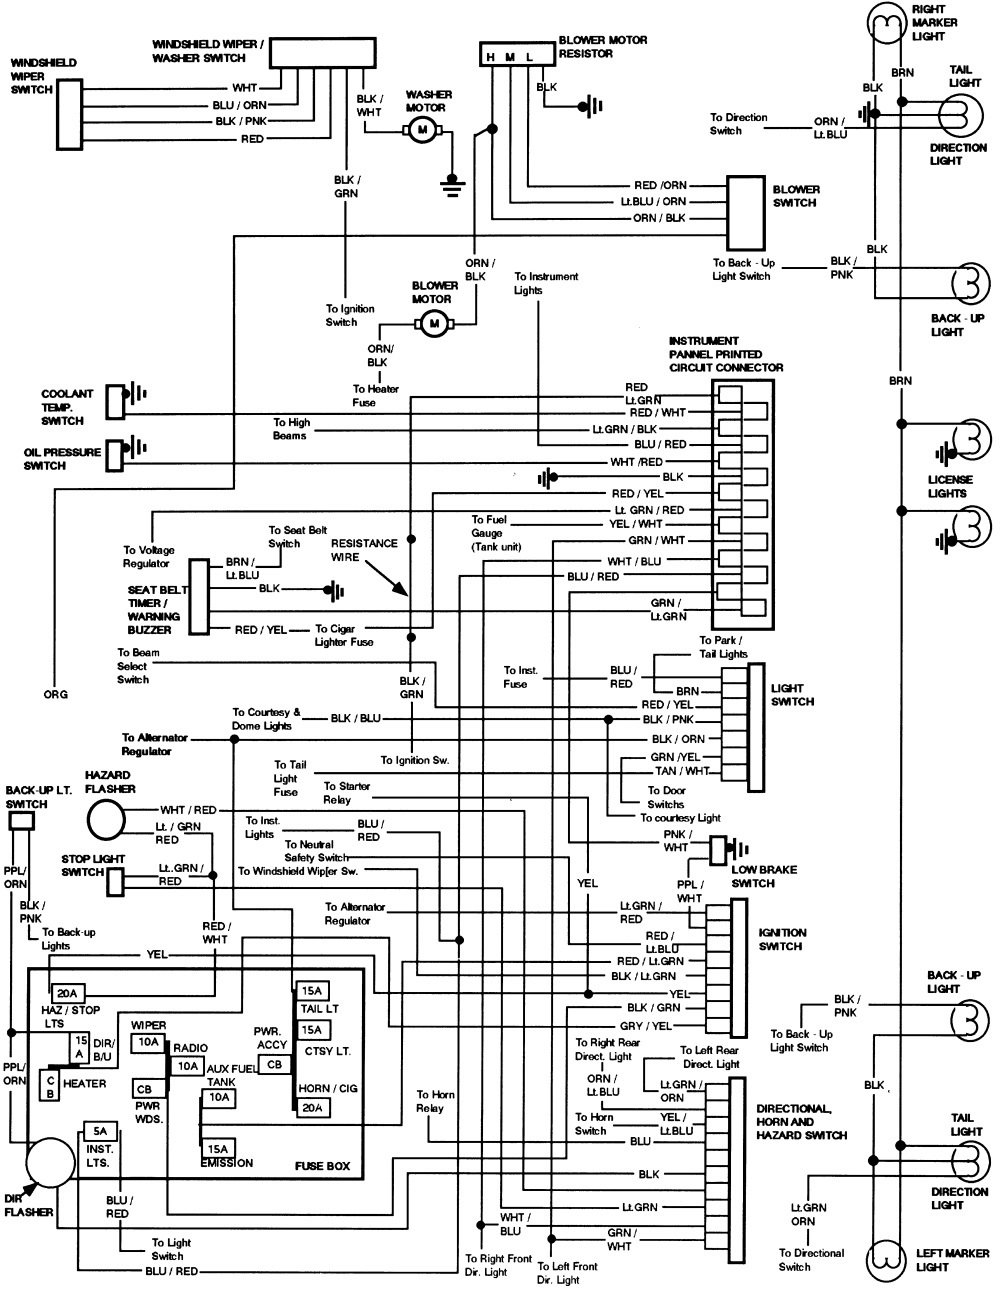 🏆 [DIAGRAM in Pictures Database] Wiring Diagram 1984 Ford F150 Just  Download or Read Ford F150 - ONLINE.CASALAMM.EDU.MX | Twe037e13fb1 Wiring Diagram Pdf |  | Complete Diagram Picture Database